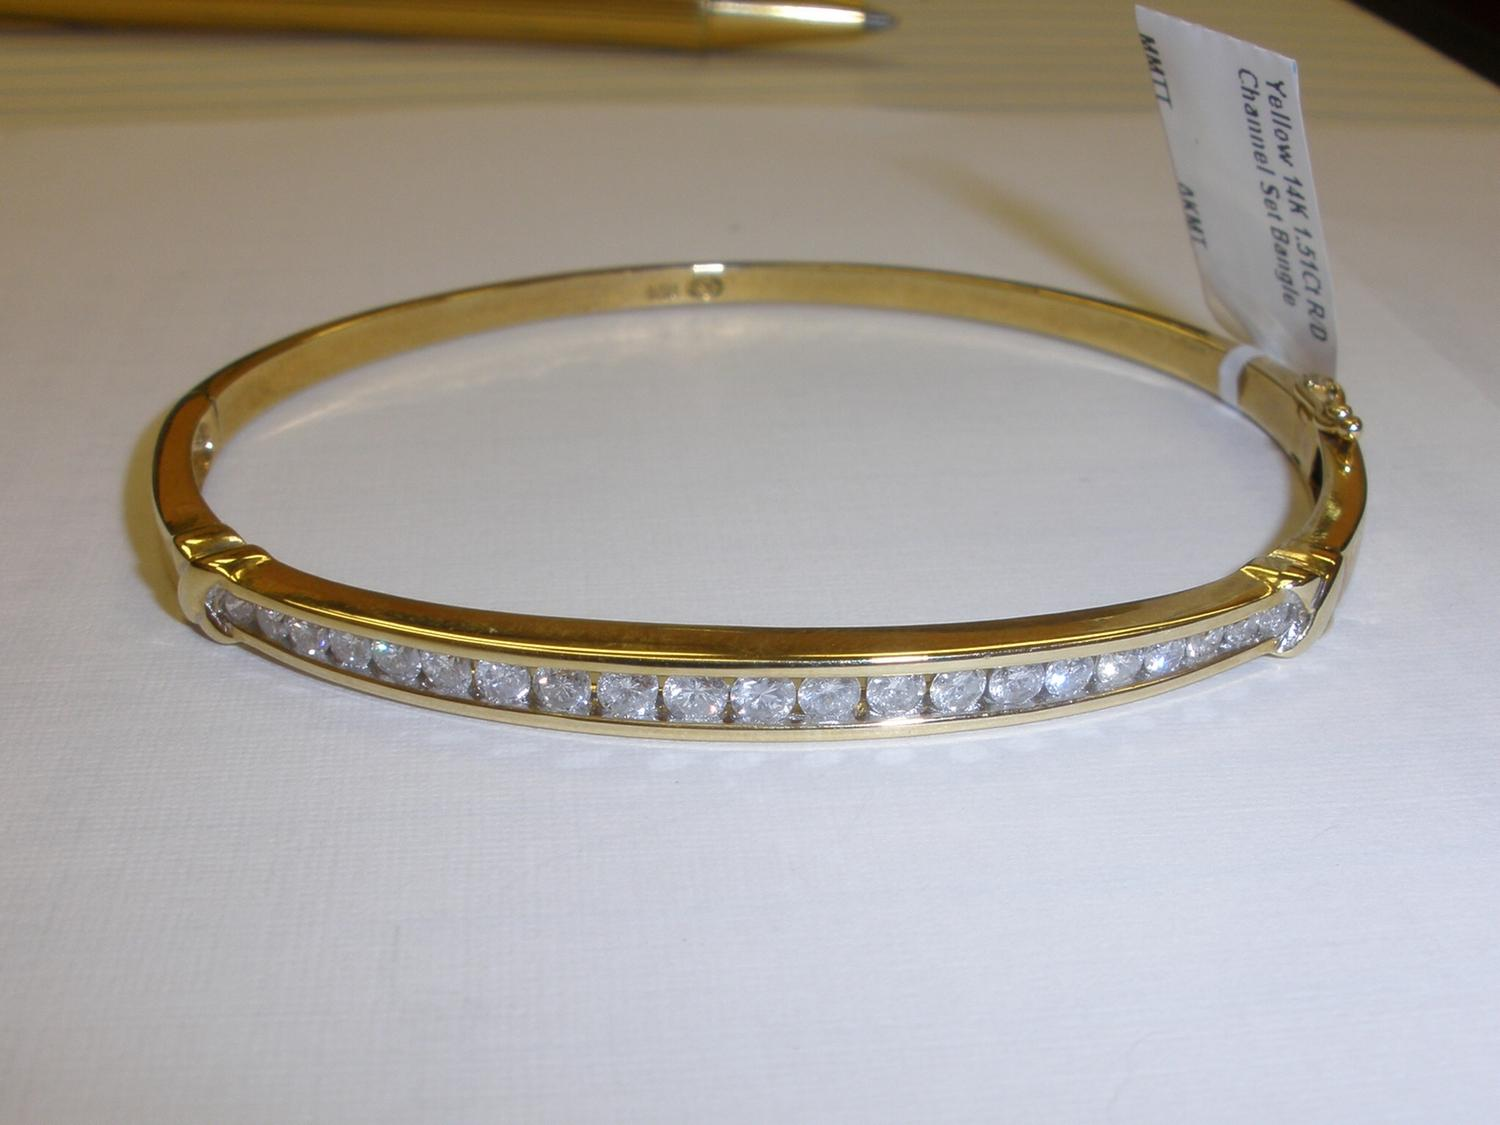 house twist design diamond product gold bangle white of bangles bracelet